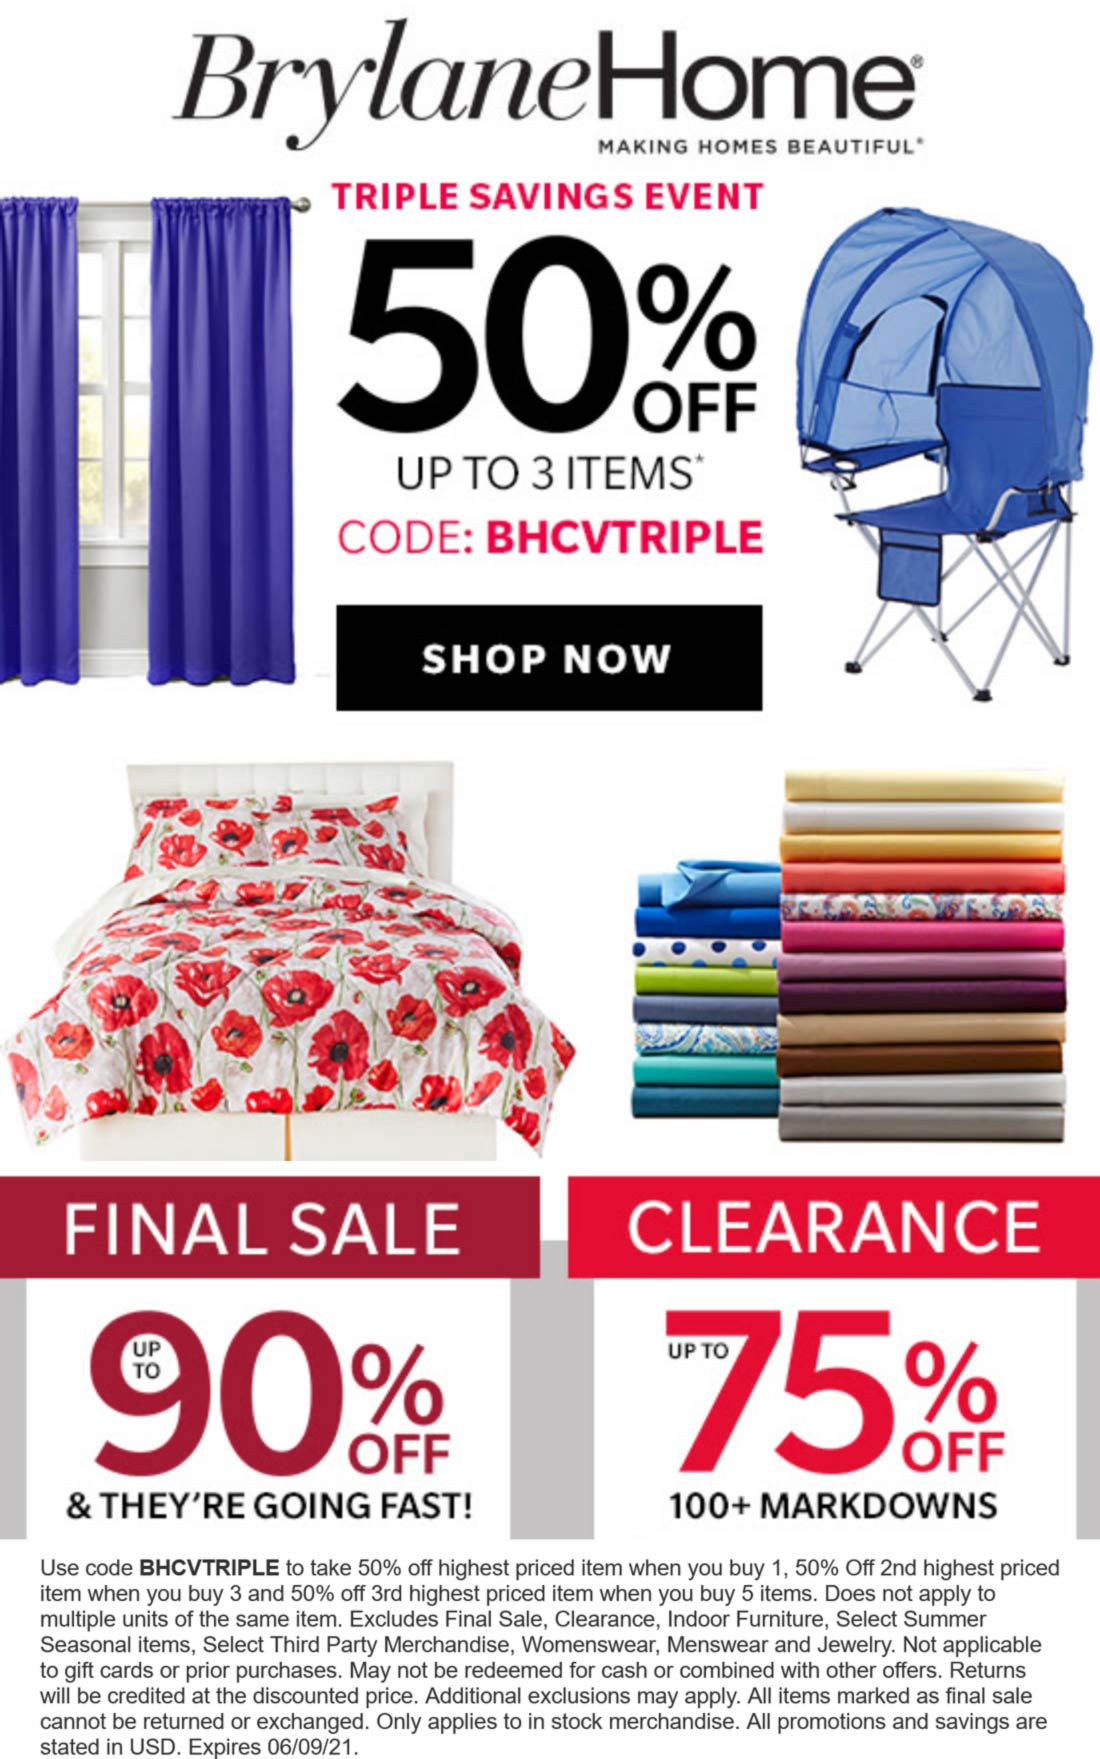 Brylane Home stores Coupon  50% off 1-3 items at Brylane Home via promo code BHCVTRIPLE #brylanehome